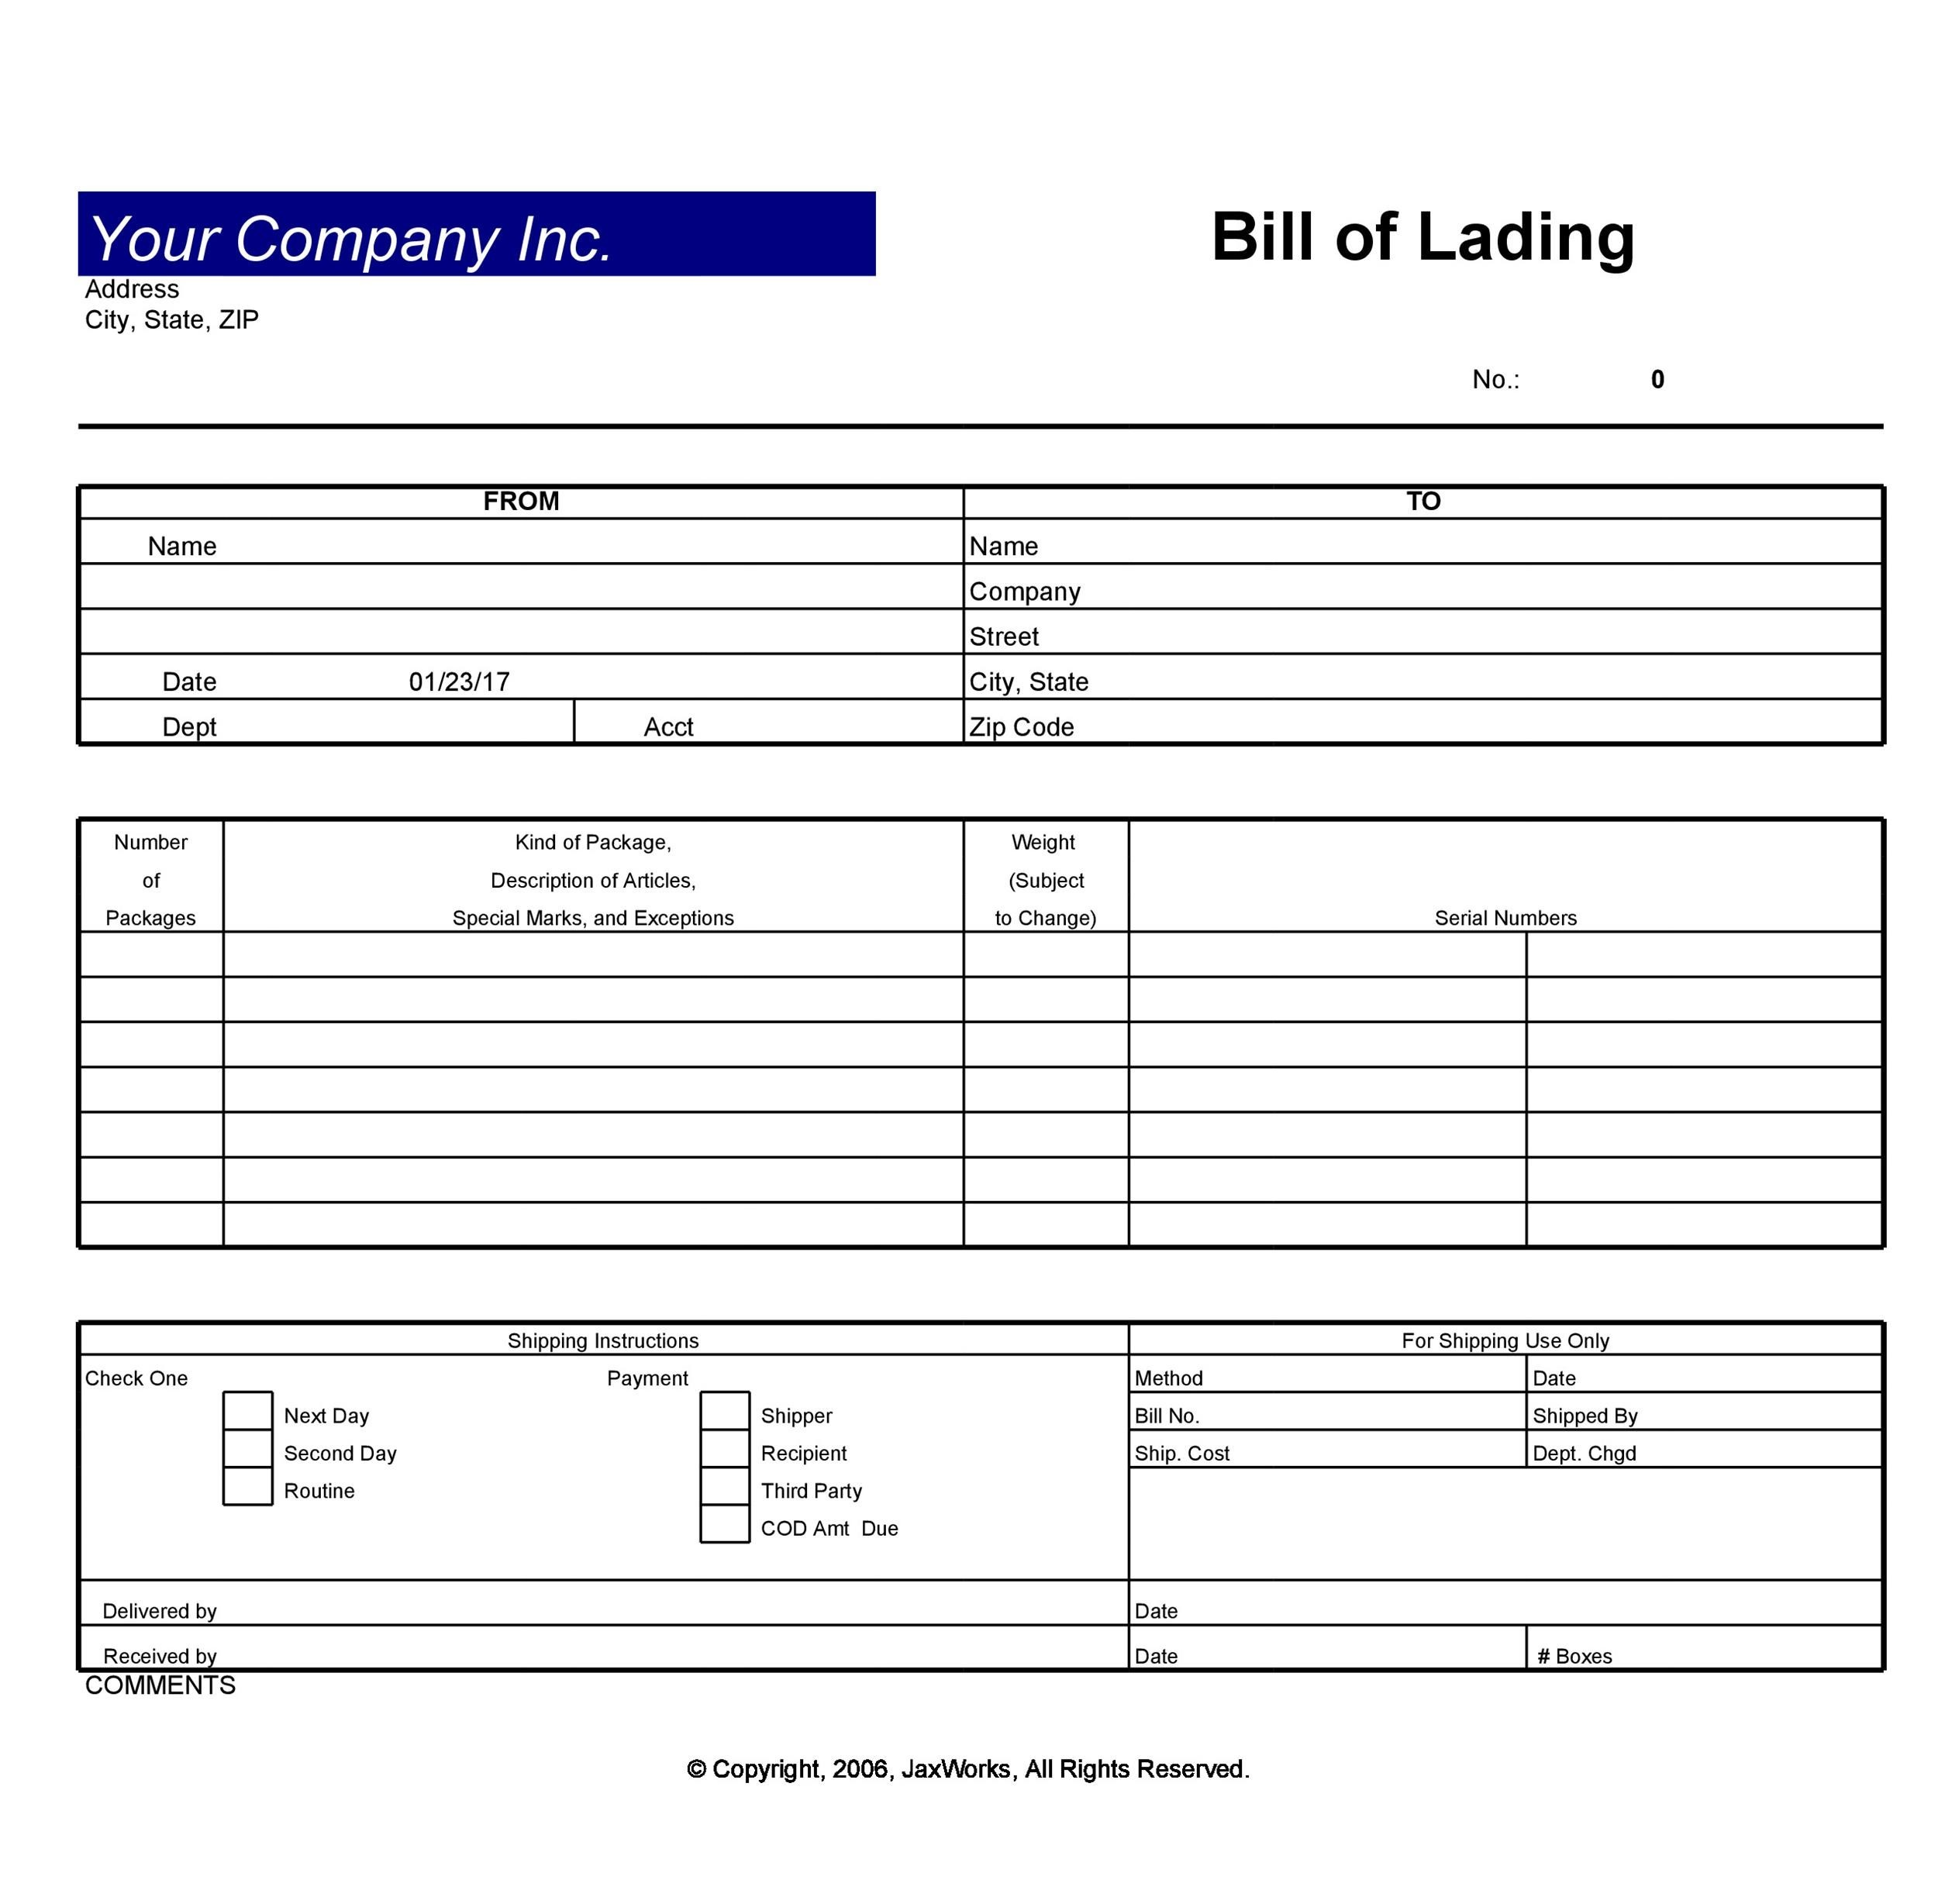 40 Free Bill Of Lading Forms Templates ᐅ Template Lab